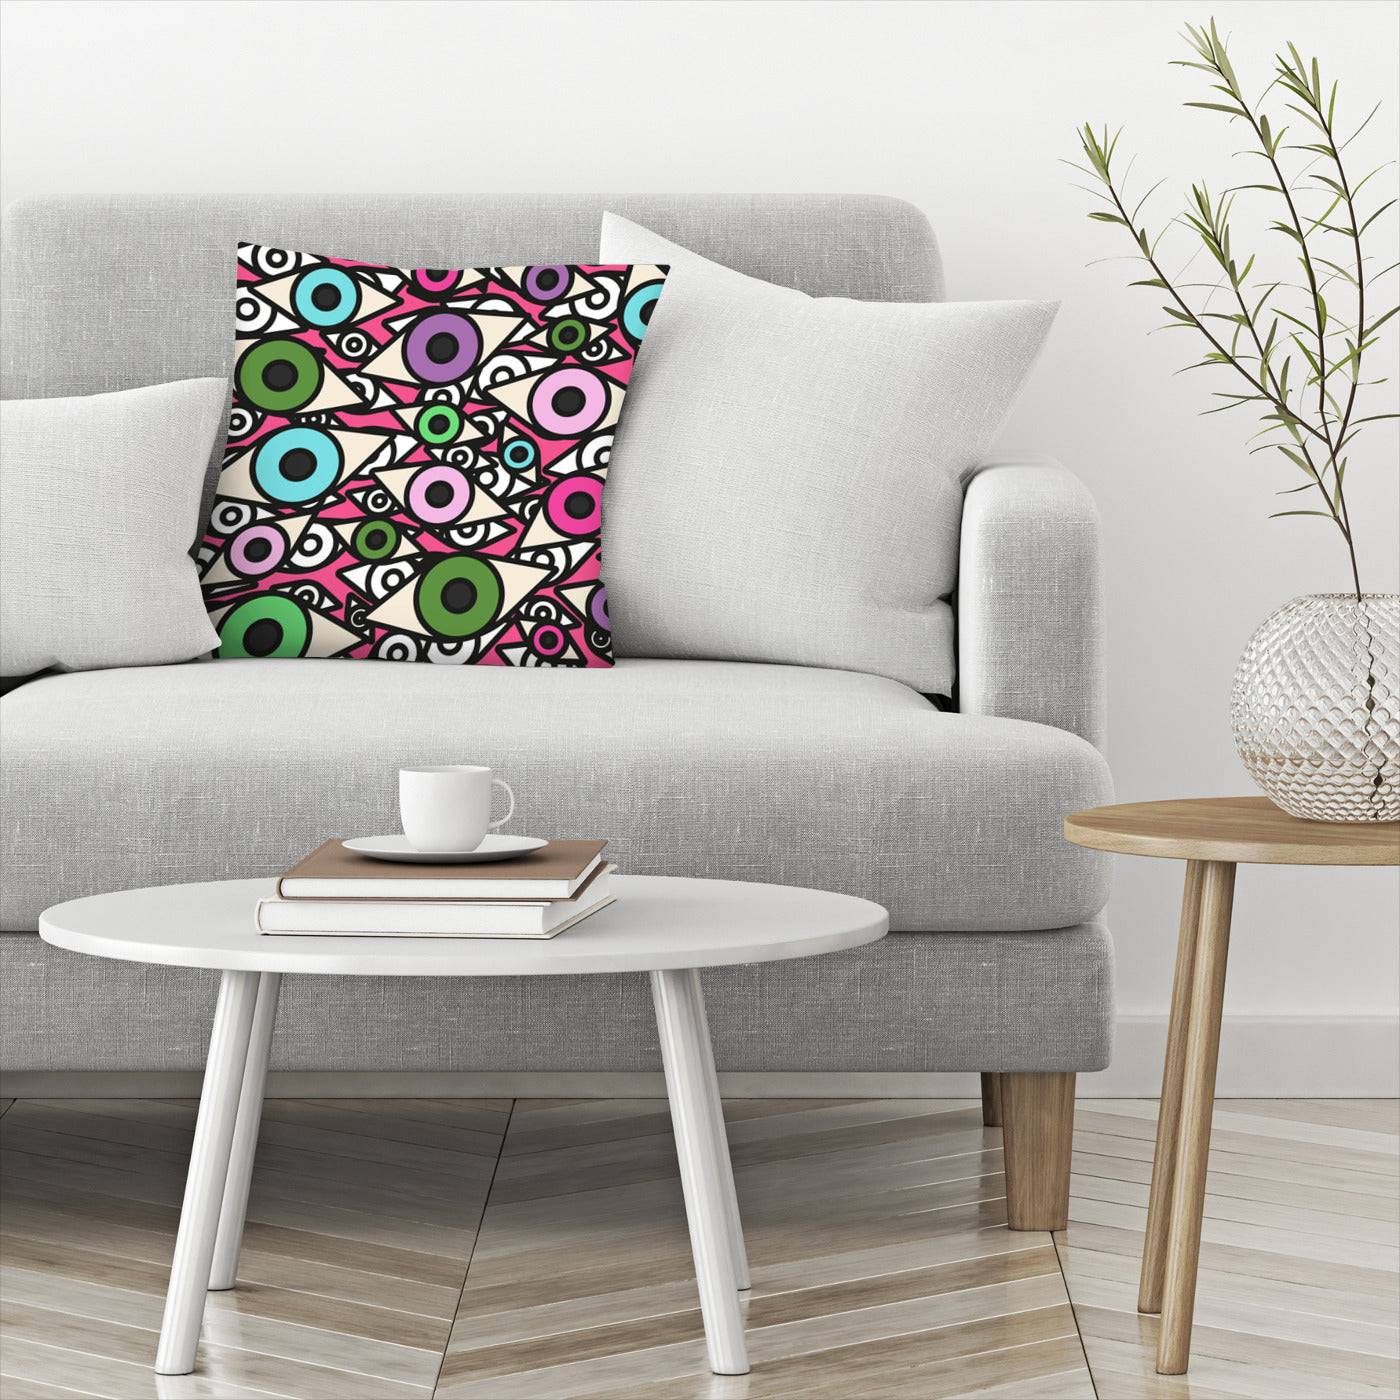 I Am Watching You by Susana Paz Decorative Pillow - Decorative Pillow - Americanflat